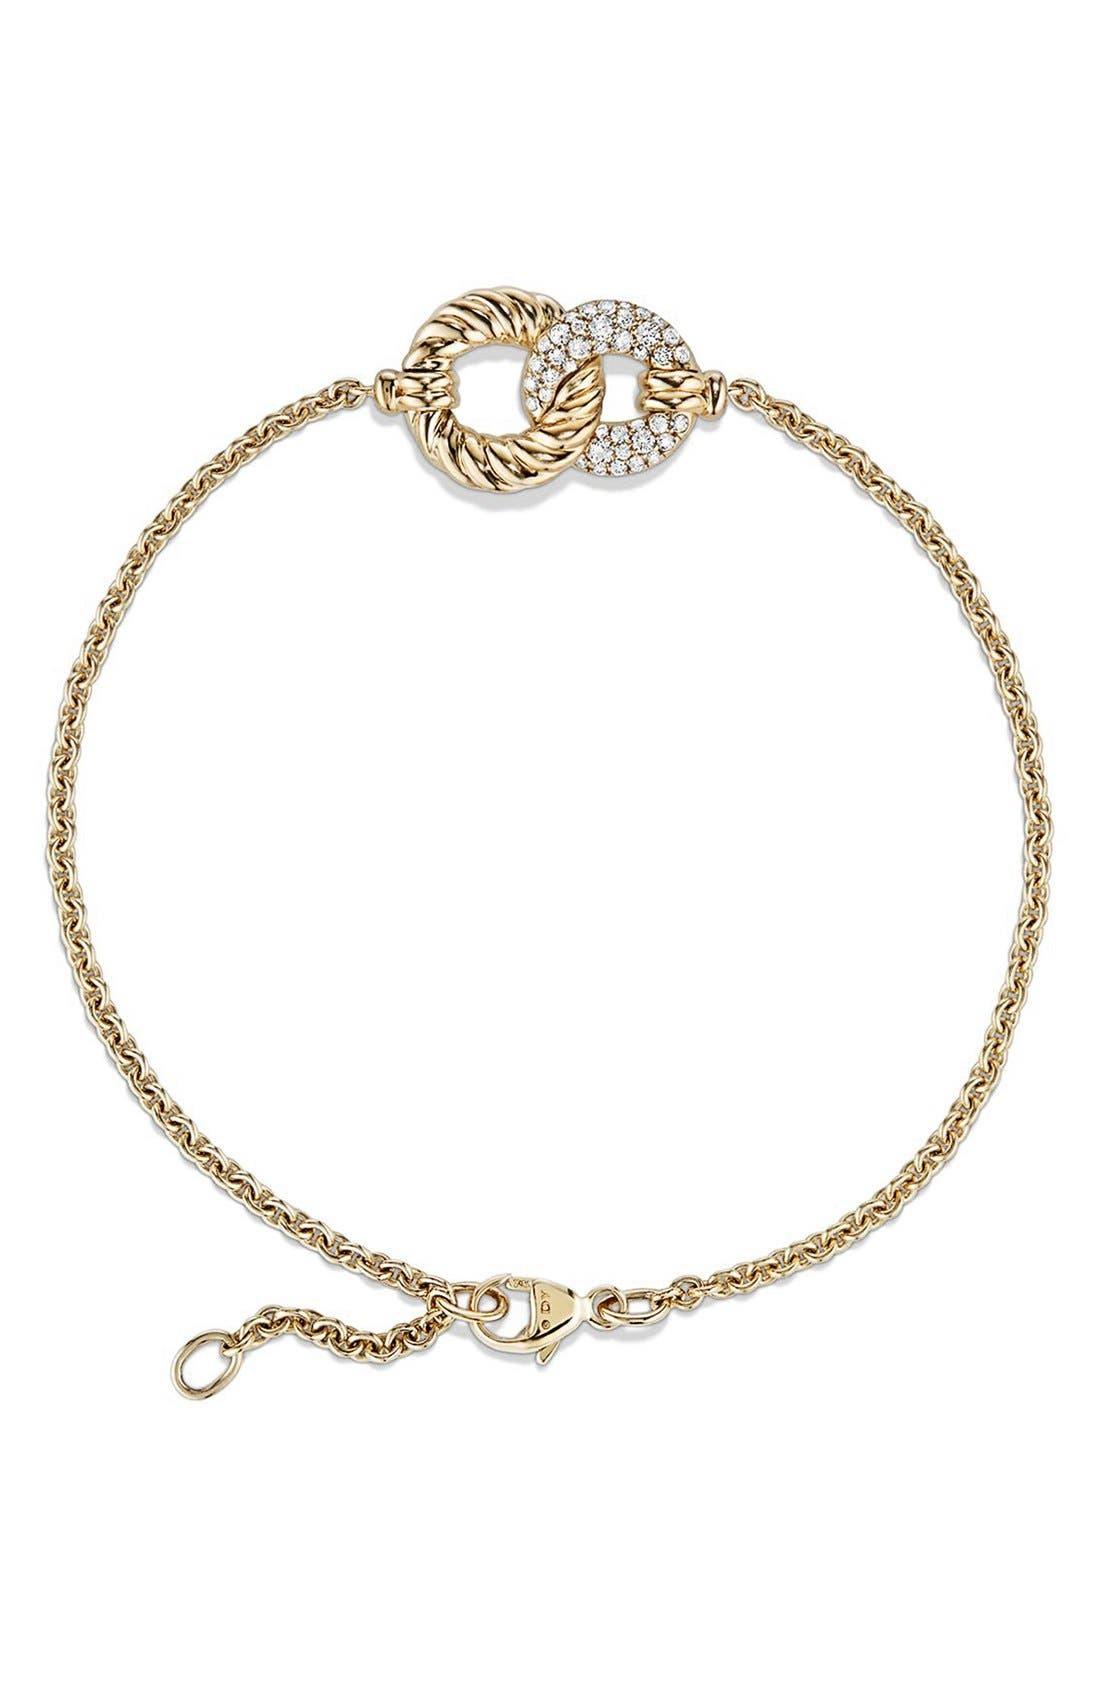 Belmont Single Station Bracelet,                             Alternate thumbnail 3, color,                             YELLOW GOLD/ DIAMOND